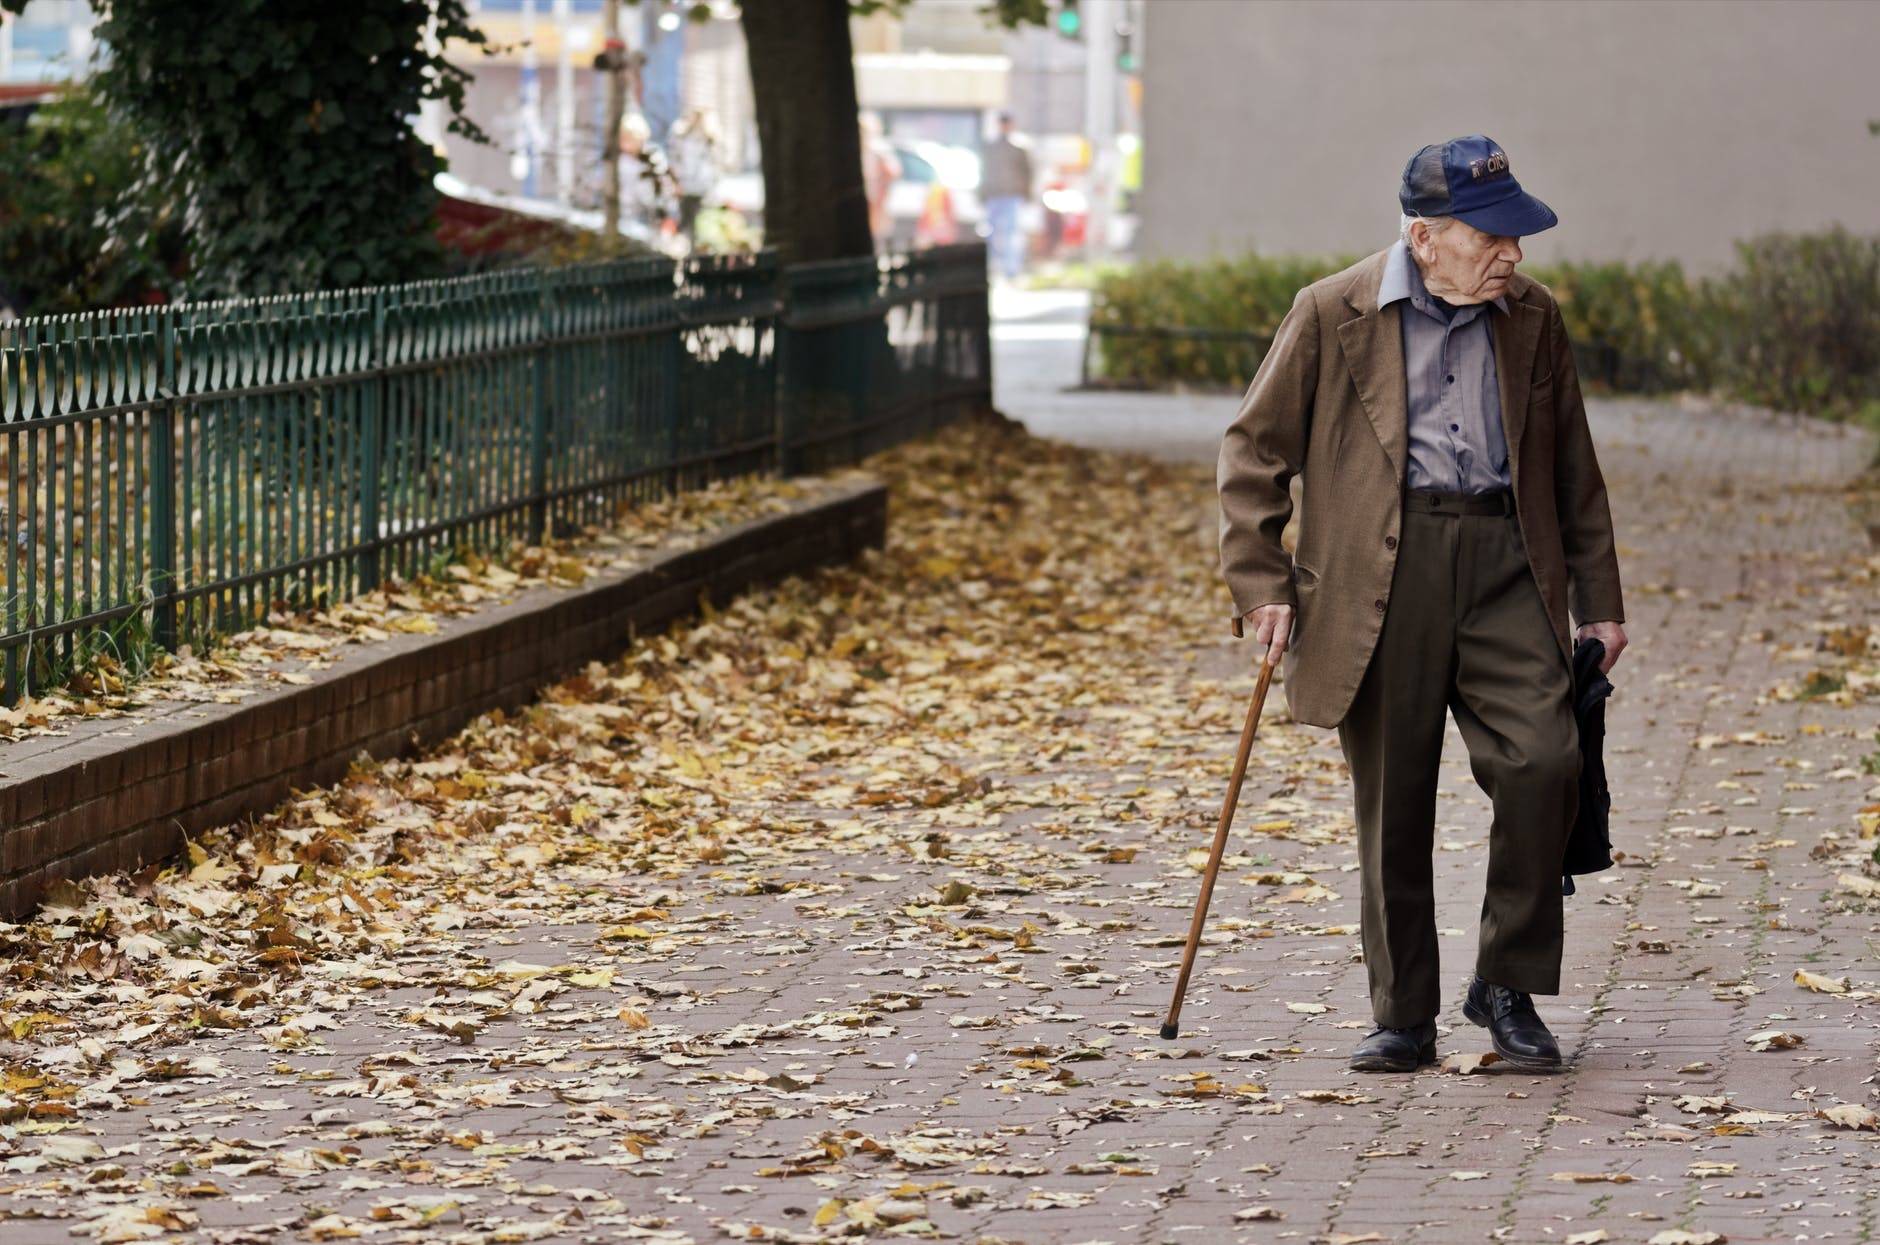 Elderly man making successful steps on his journey